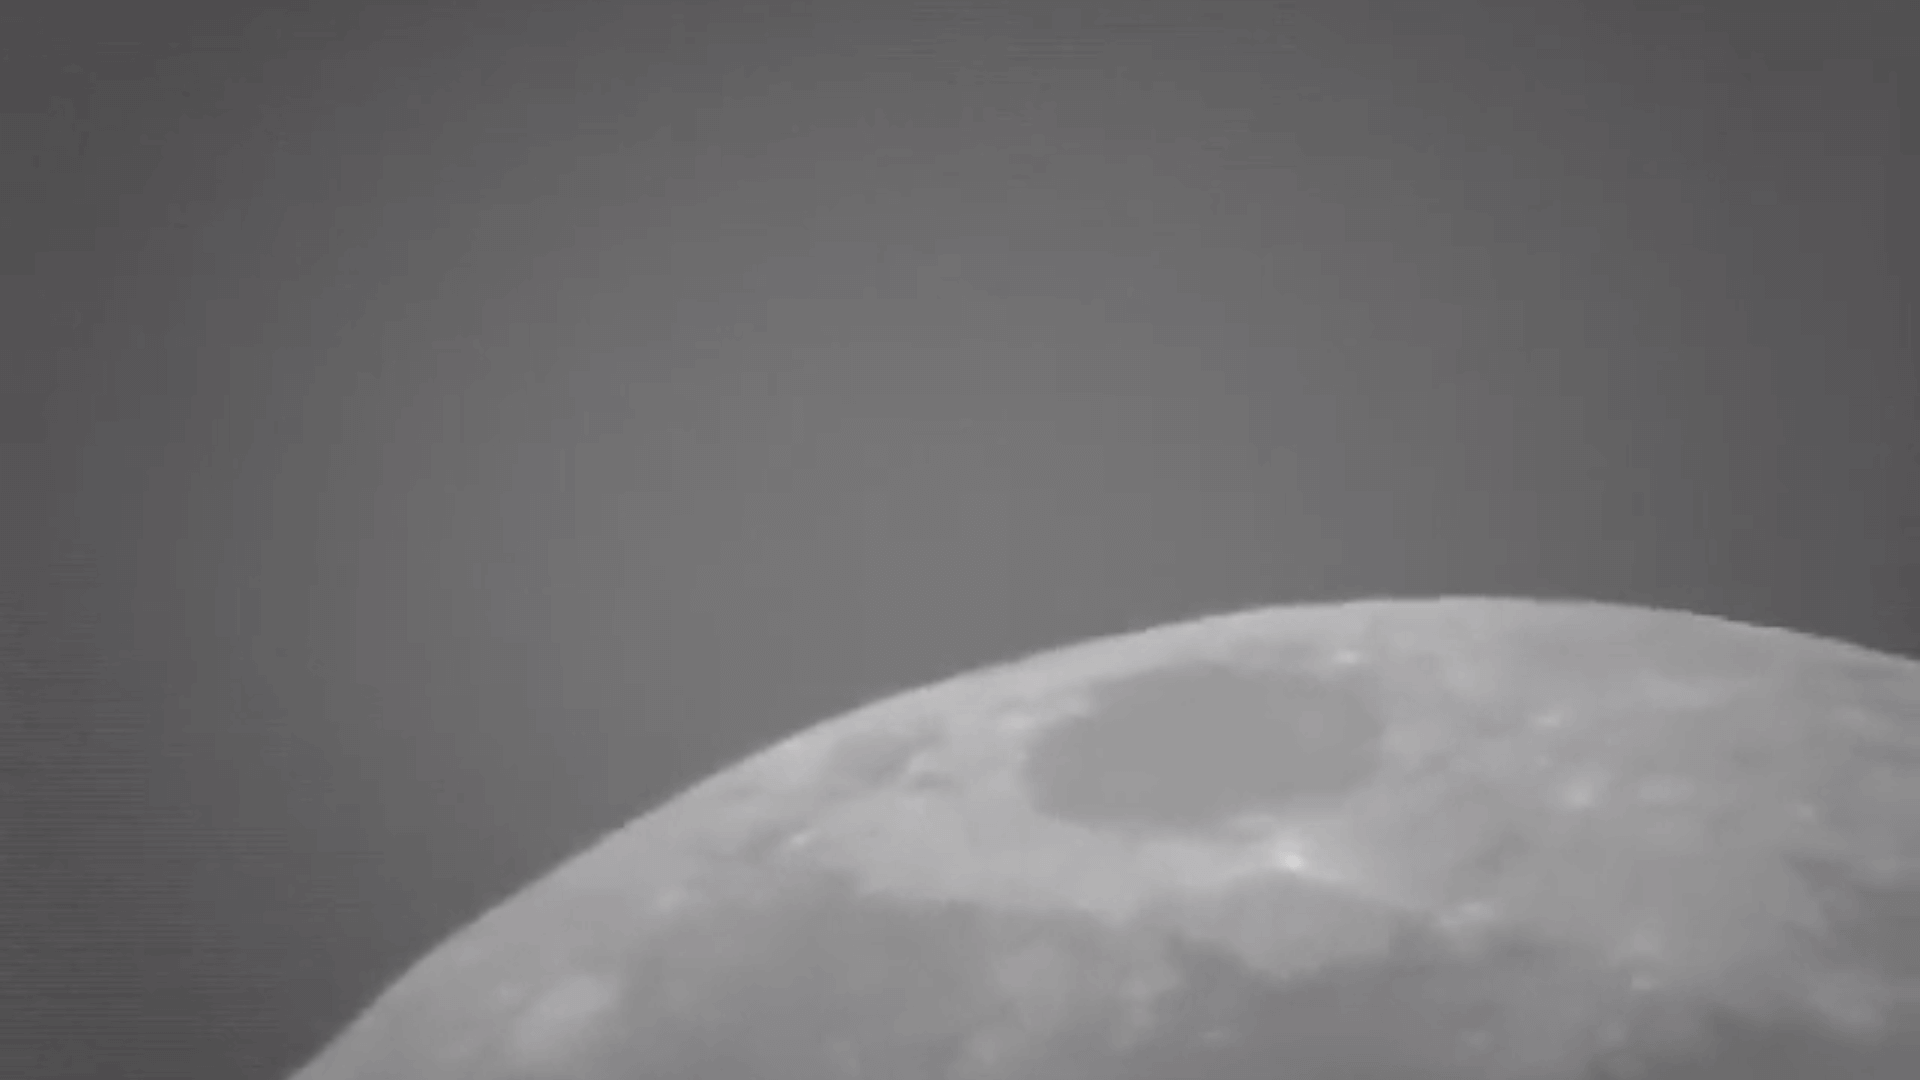 Moon, daylight, no tracking - normal speed